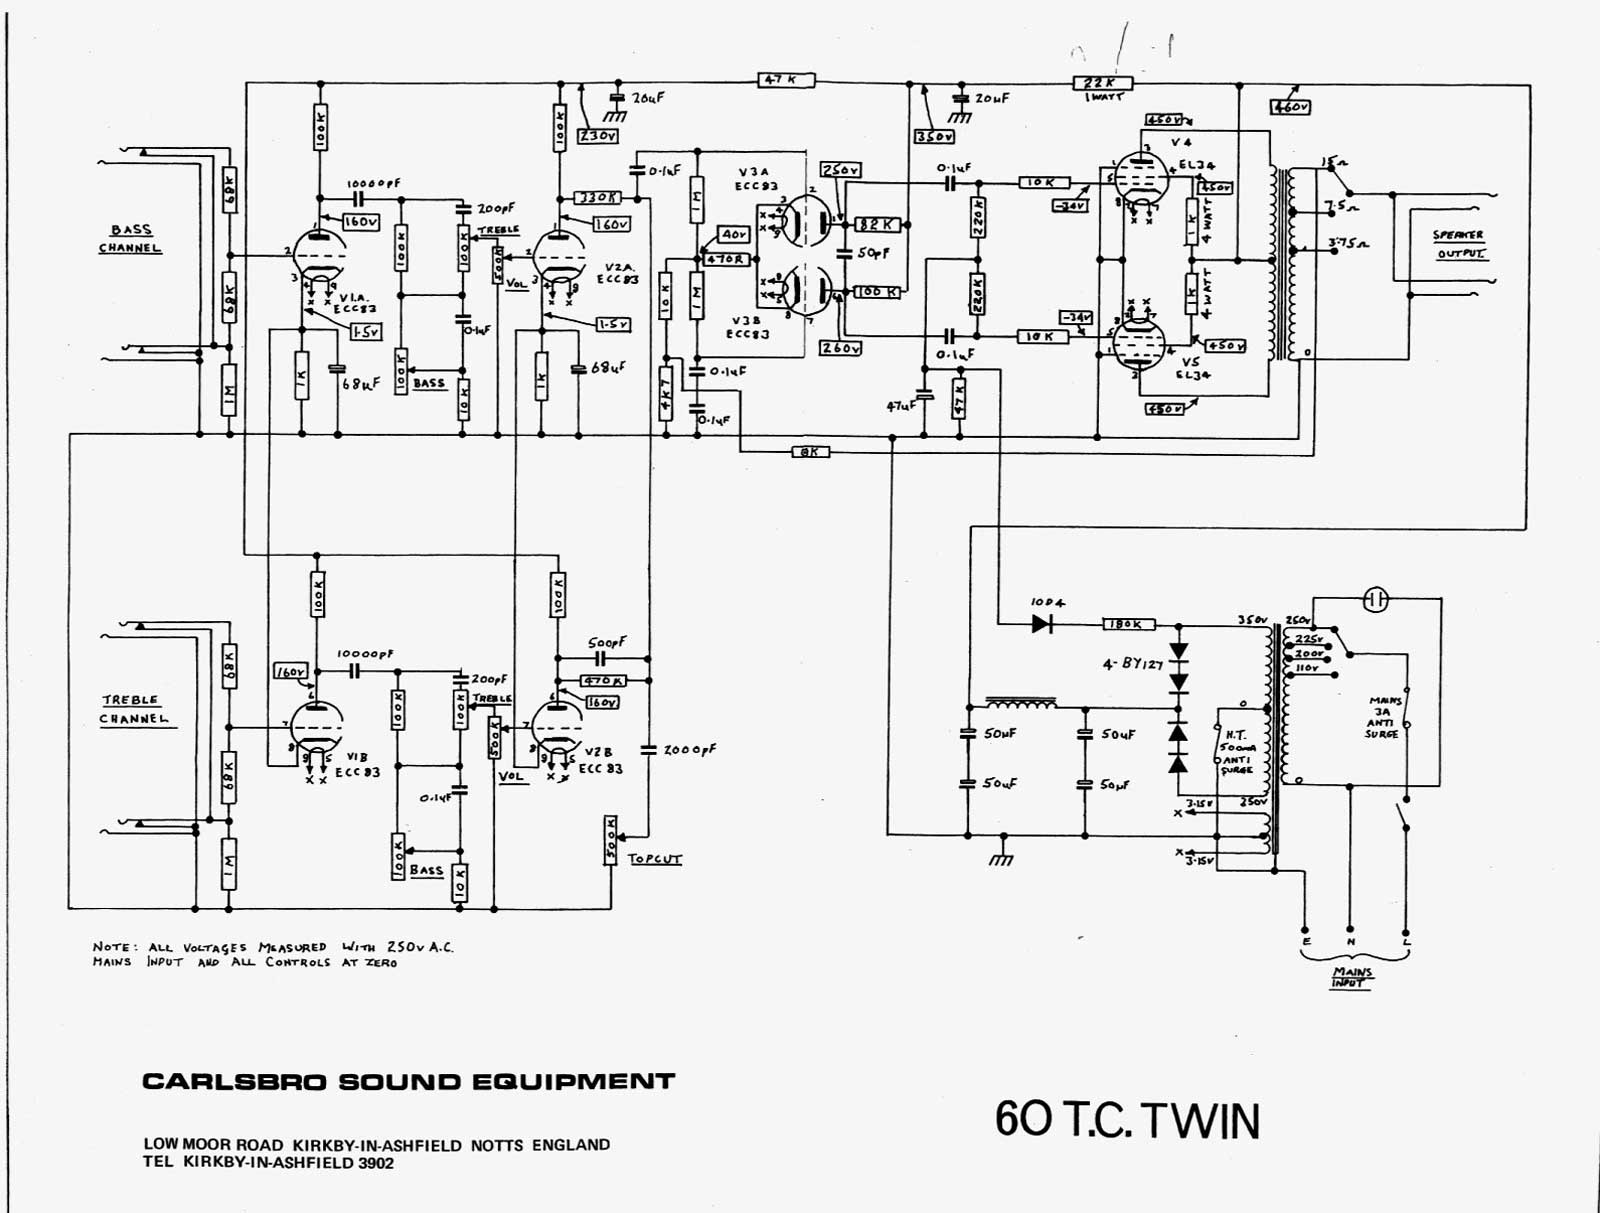 Ramsey Dc 200 Wiring Diagram Carlsbro 600 T C Twin Amp Schematic